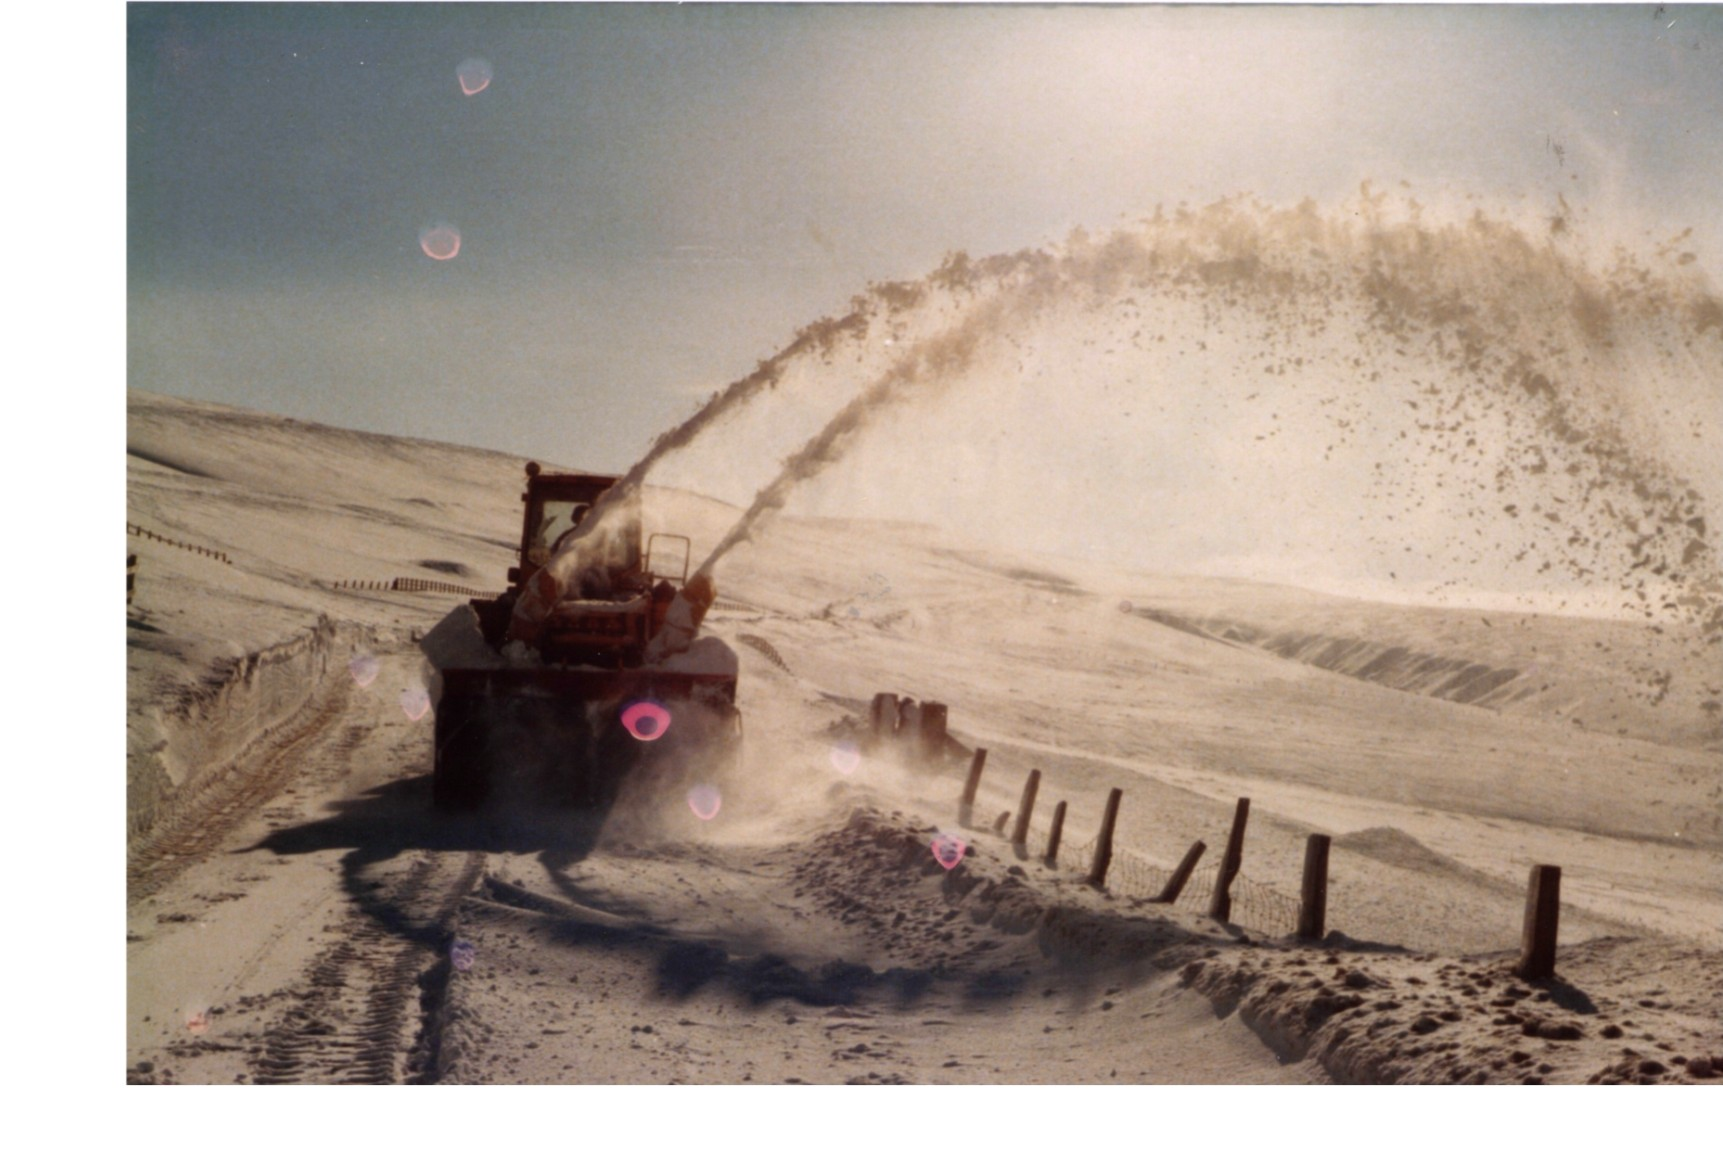 Snow Blower B6277 Alsto to Middleton in Teesdale 1986, Yad Moss